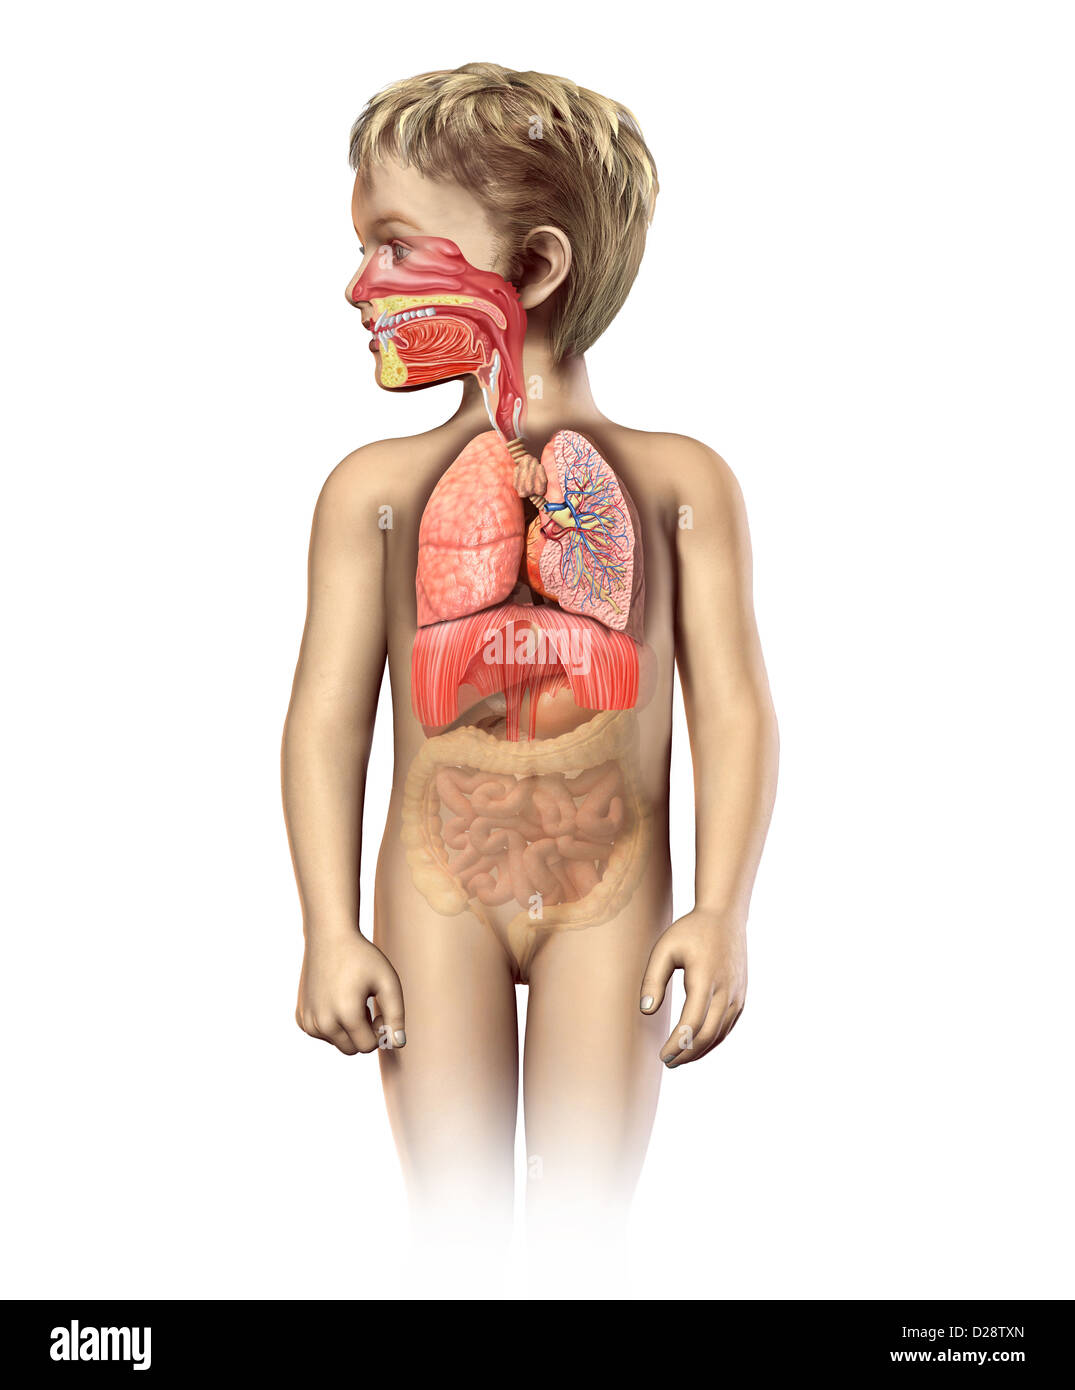 Child anatomy full respiratory system cutaway. Including mouth and nasal. Other organs in half tone. On white background. - Stock Image